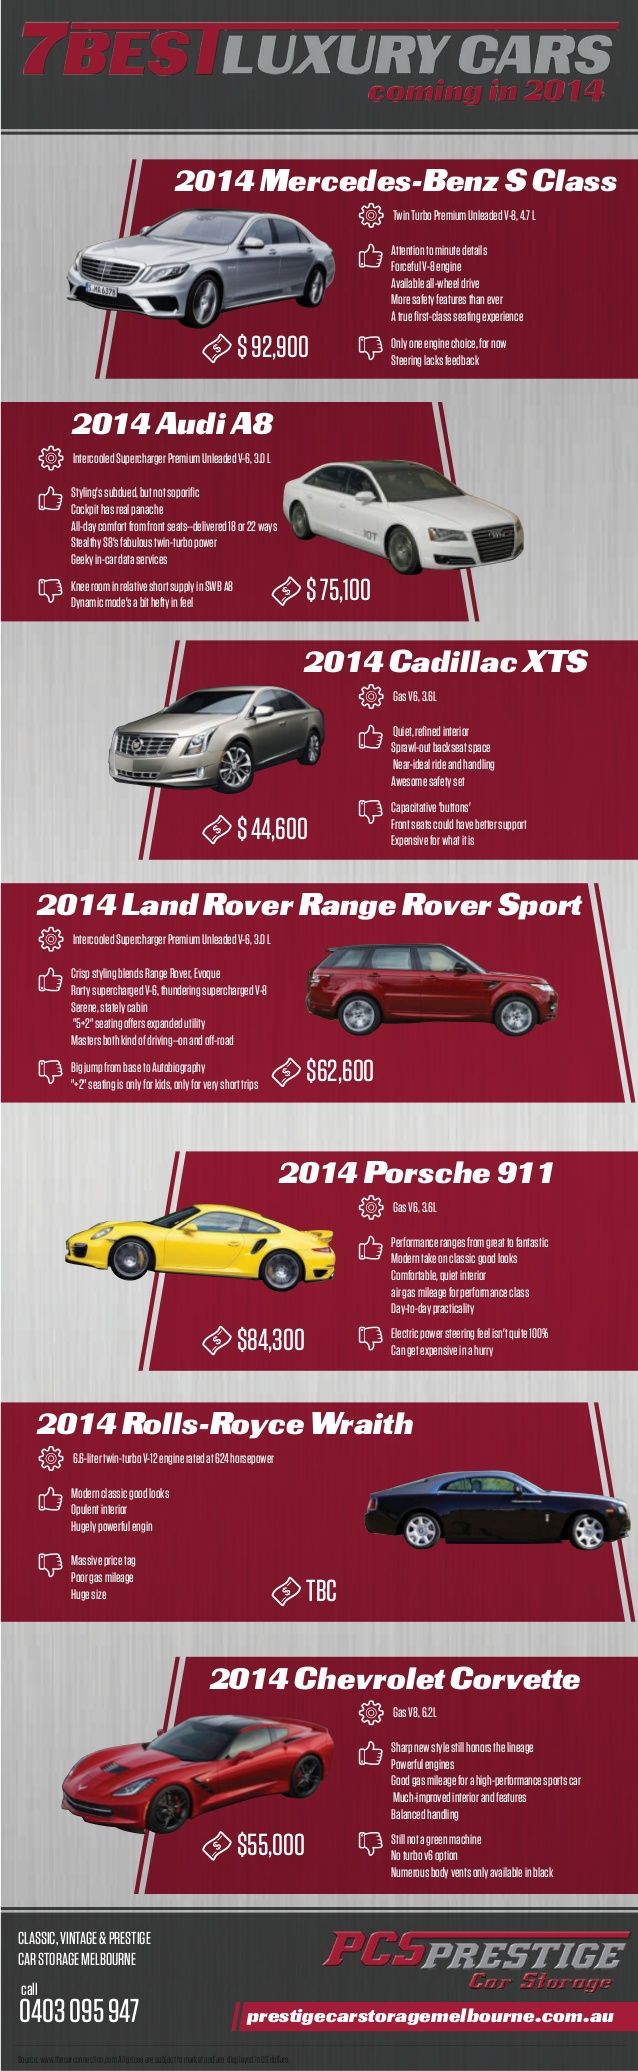 7 Best Luxury Cars coming in 2014, infographic design for Prestige Car Storage